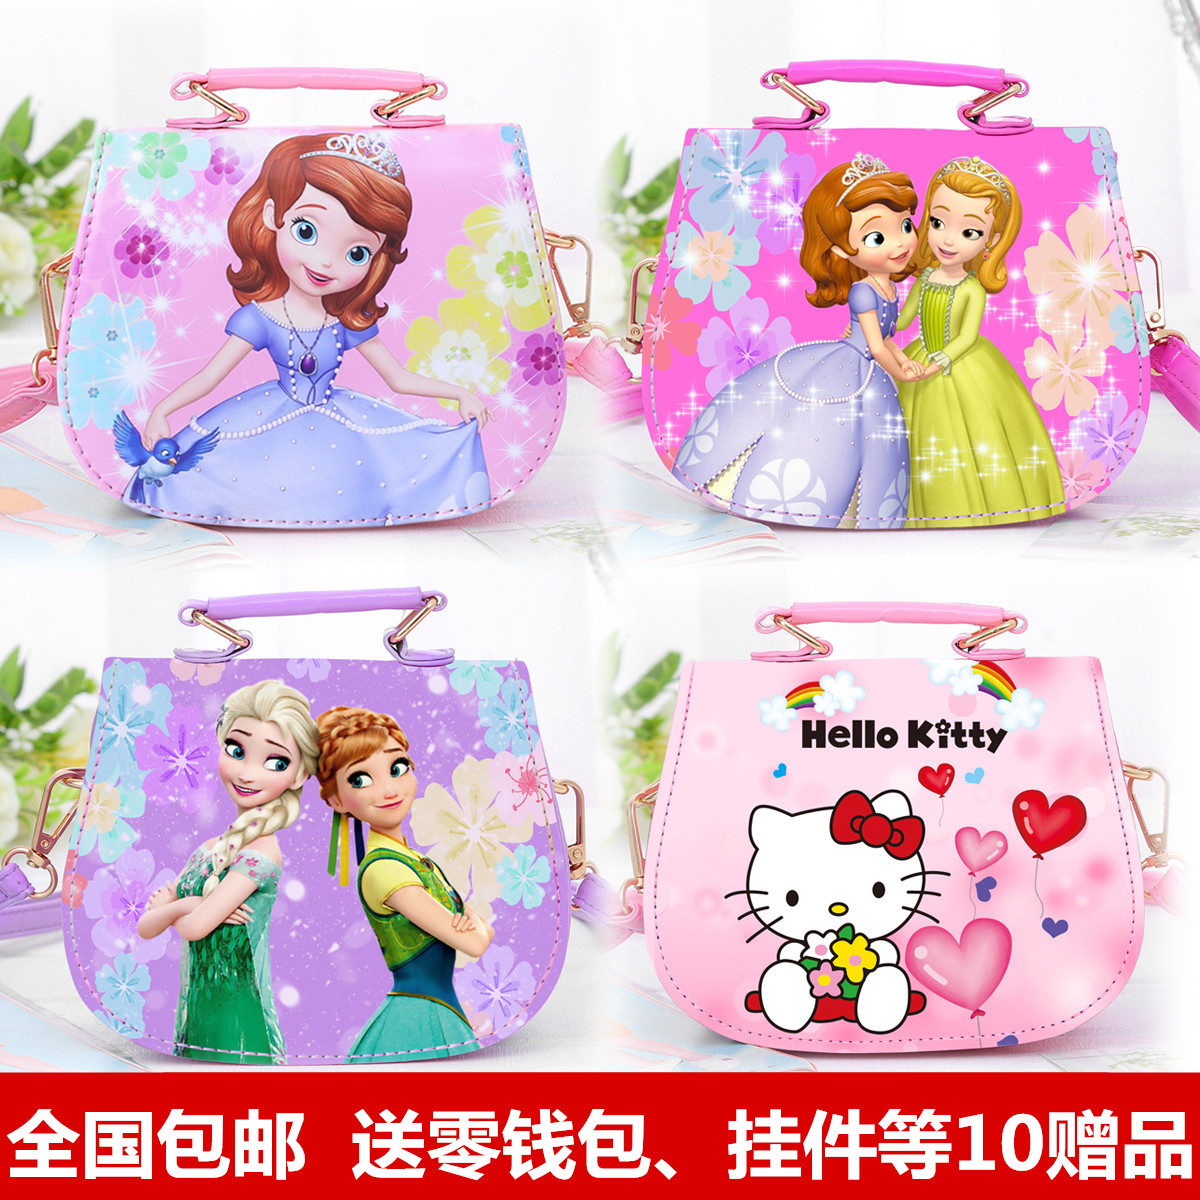 Girls Children s Bags Princess Fashion Bags Little Girls Shoulder Messenger  Bags Bags Bump Baby Mini Cute 109de6eef79cb